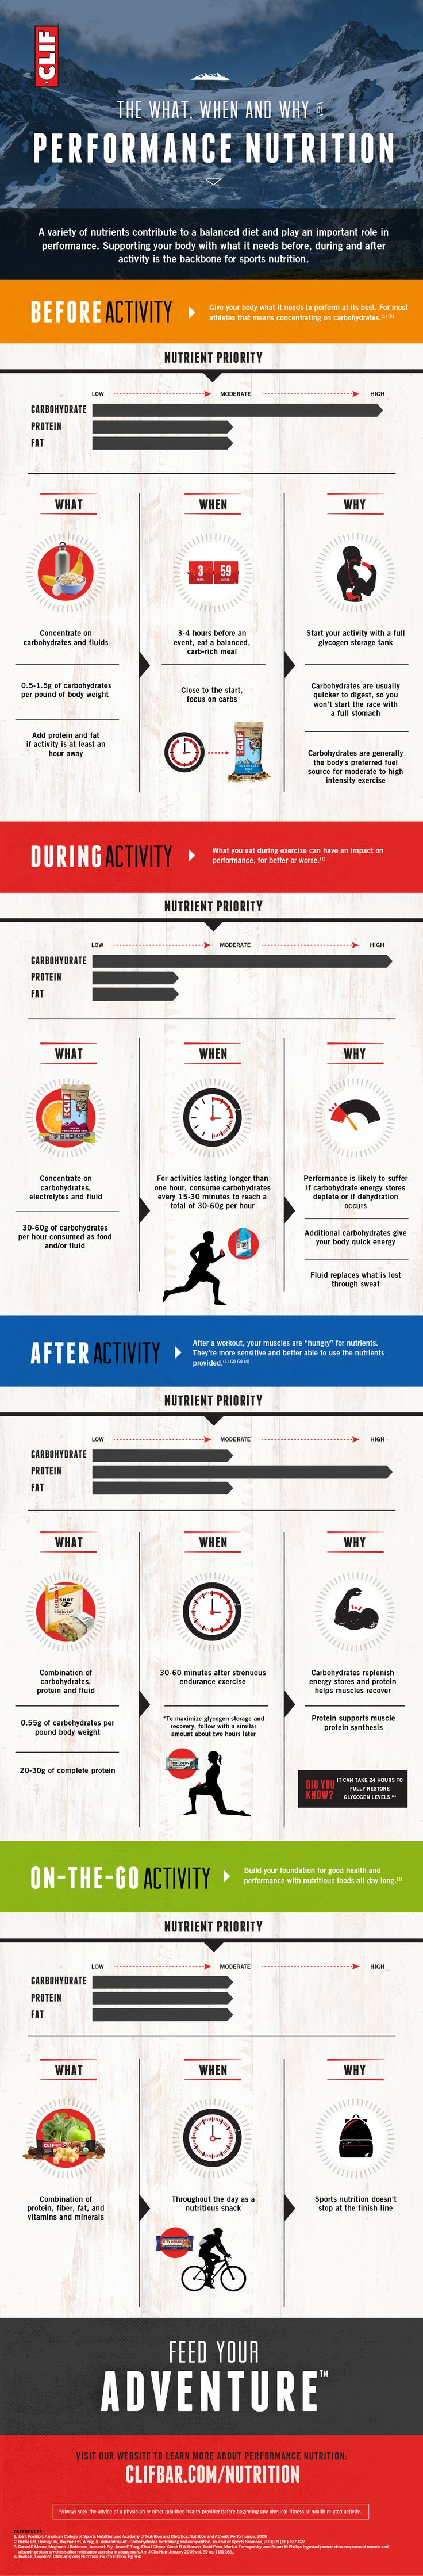 Exactly what your body needs before, during and after activity is the key to optimal sports nutrition! Follow this guide. Thanks CLIF Bar & Company. ad